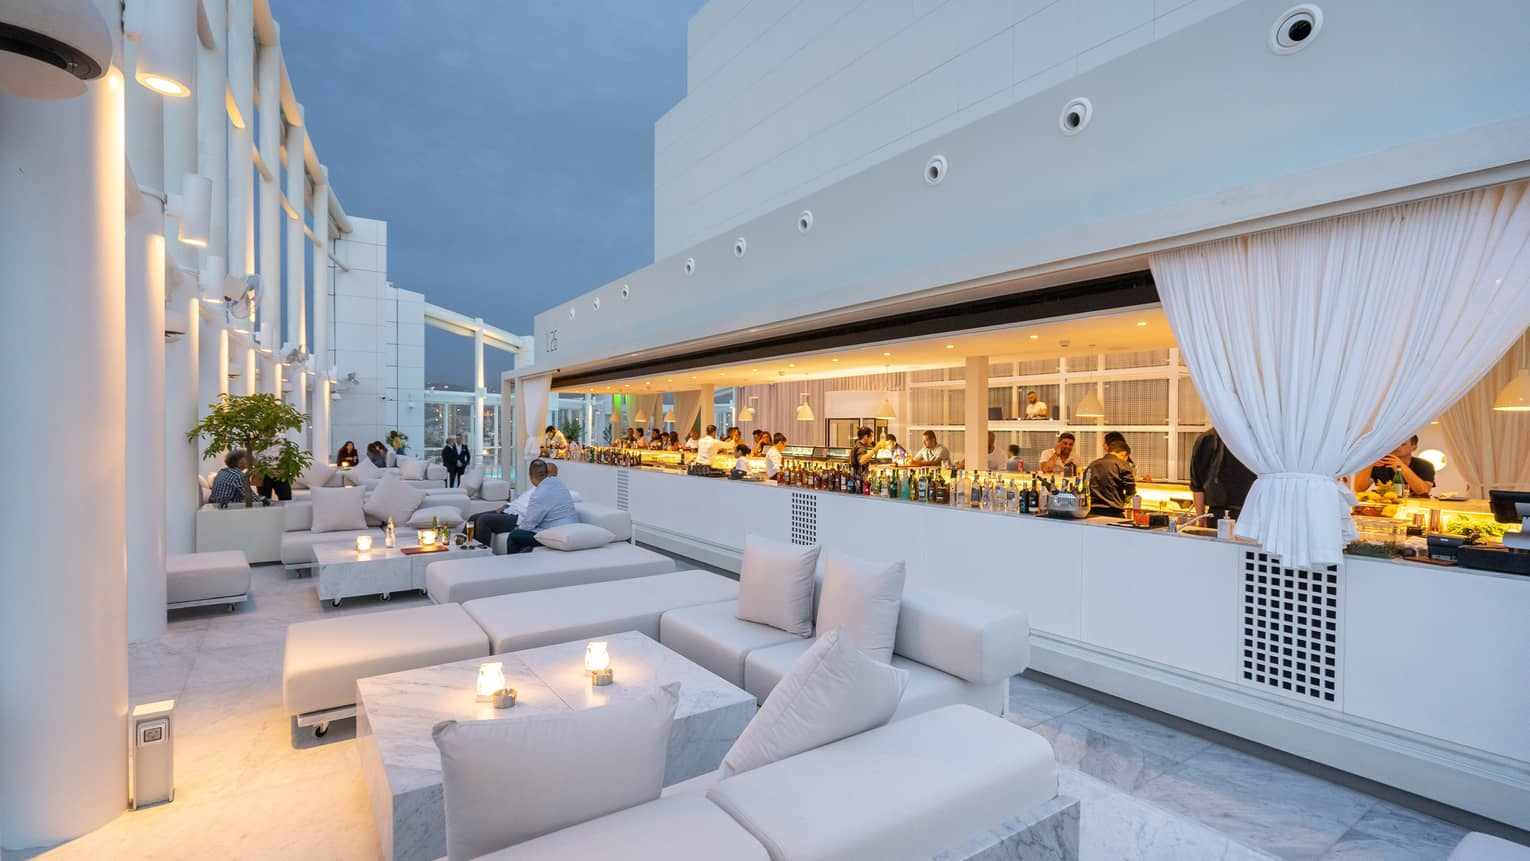 All-white contemporary furniture and decor with ambient lighting at rooftop lounge